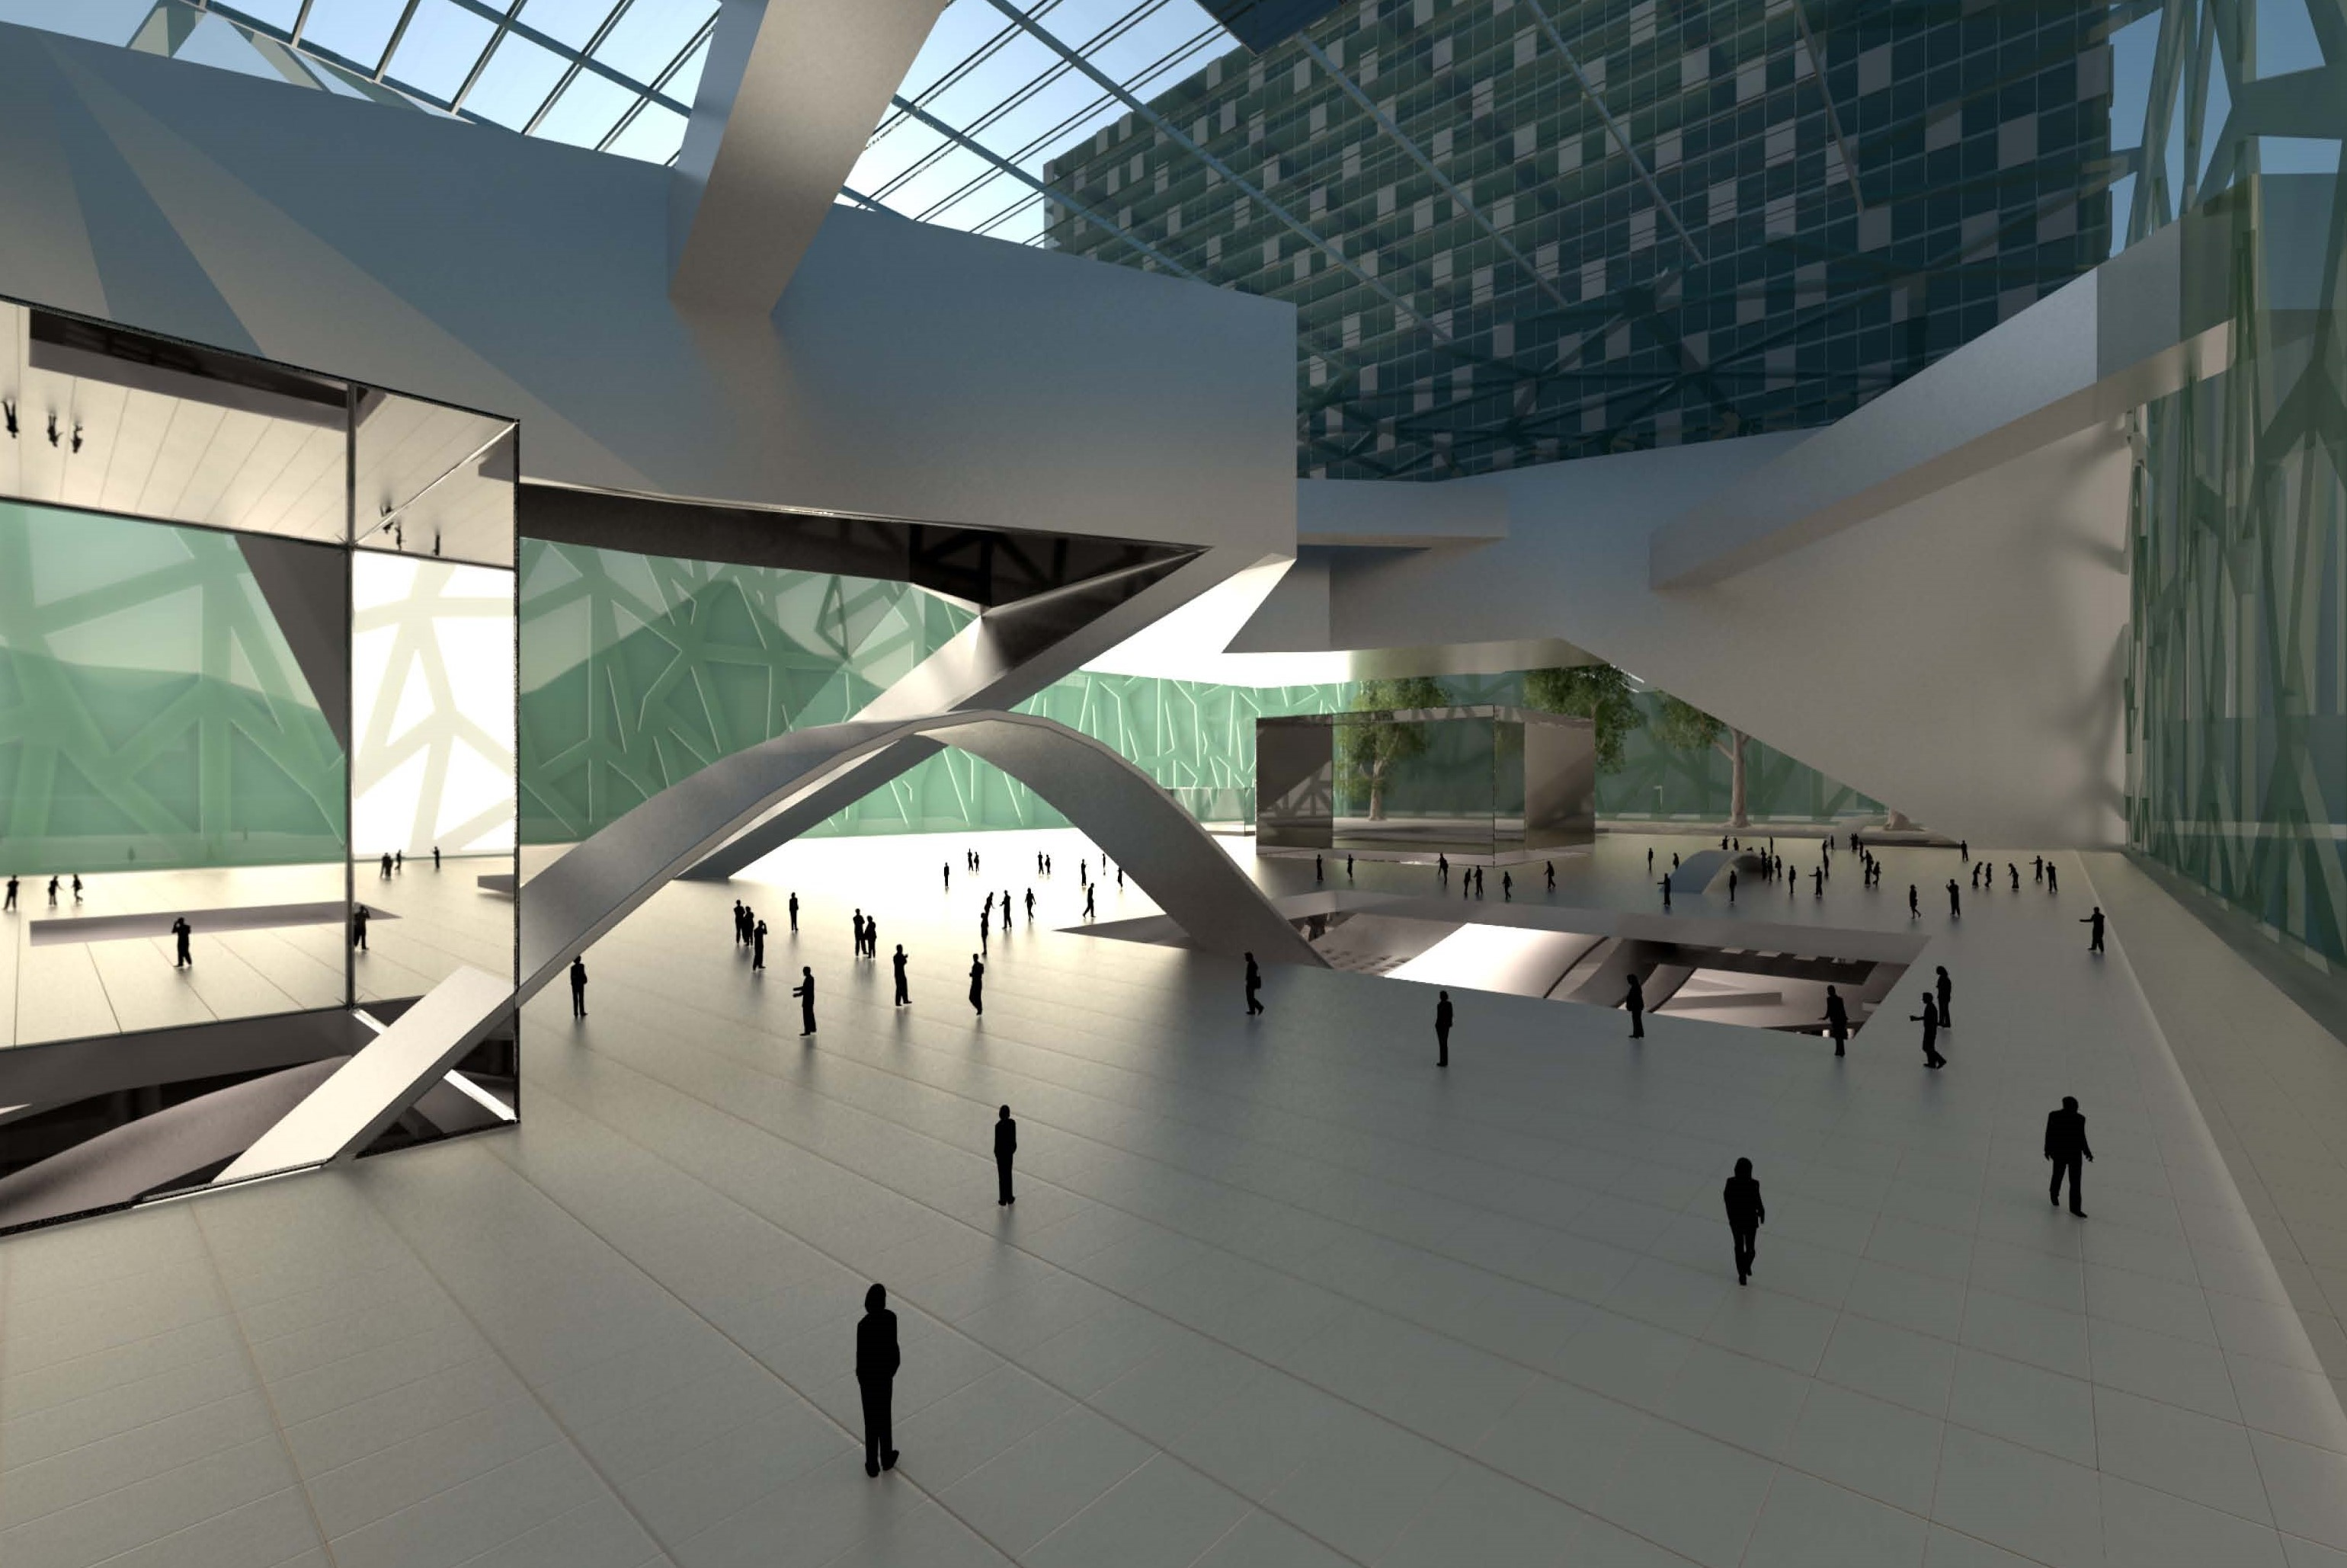 Cape Town Station 2030